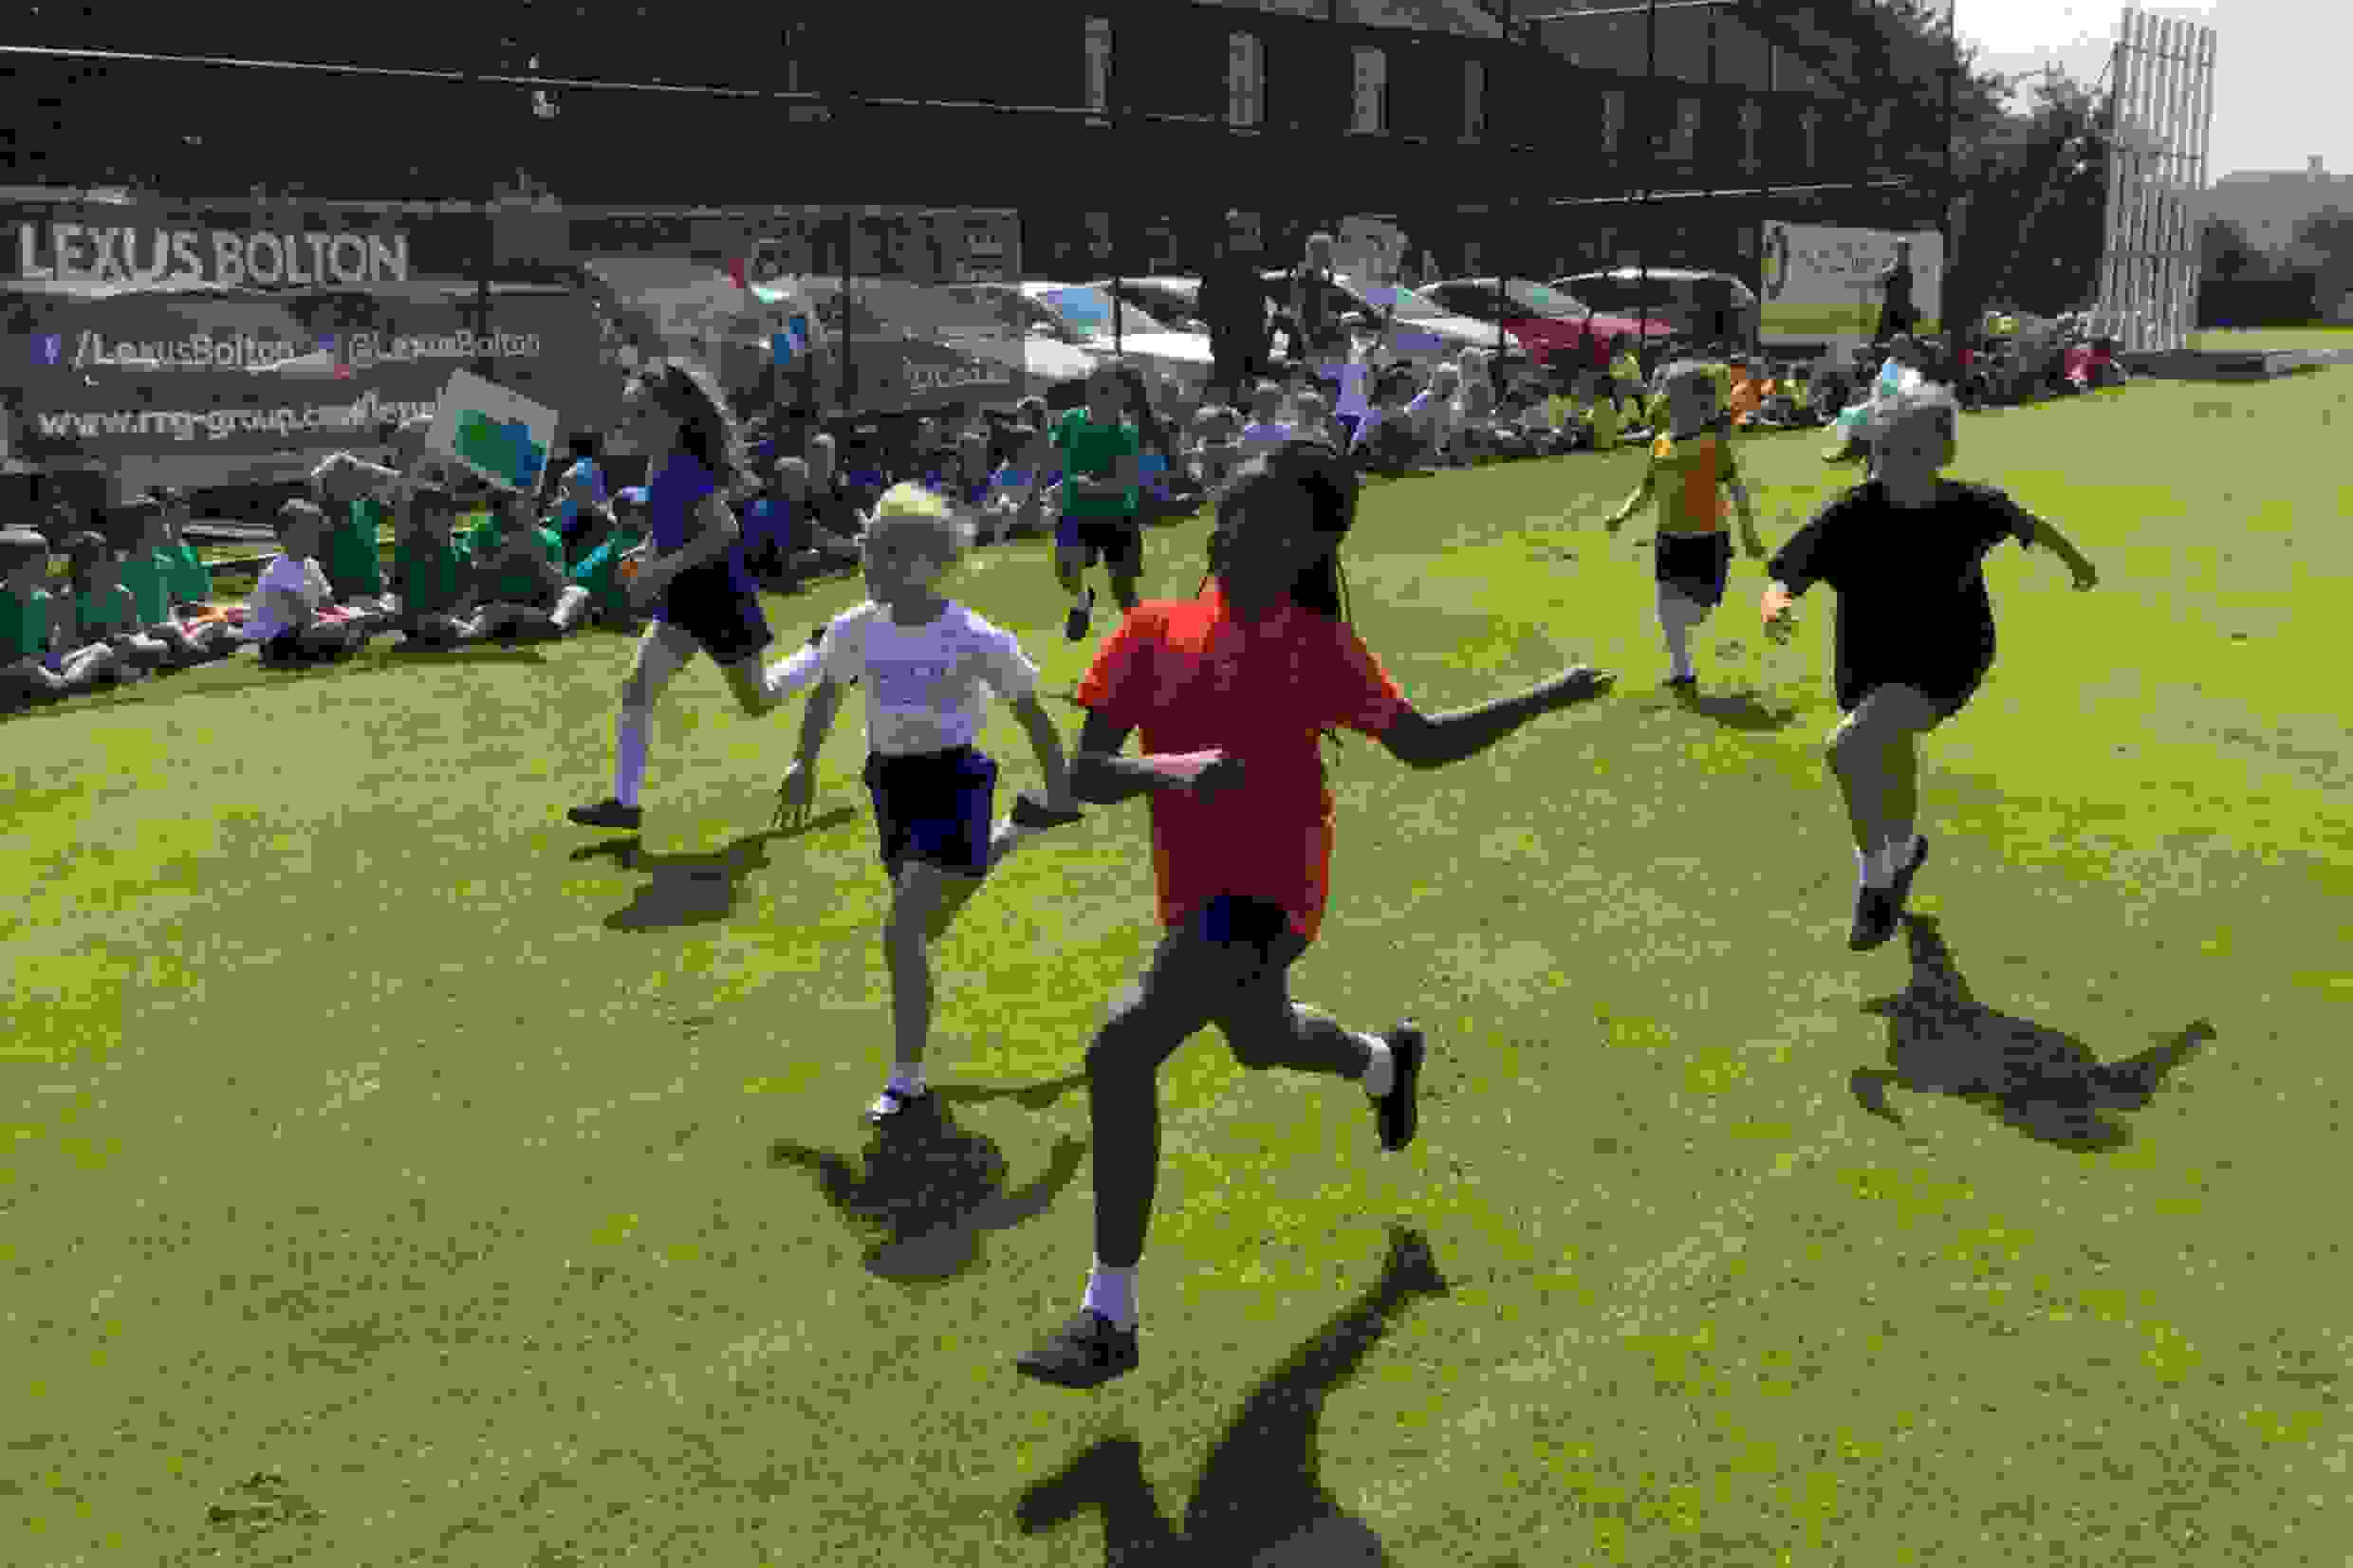 Sports Day - girls racing